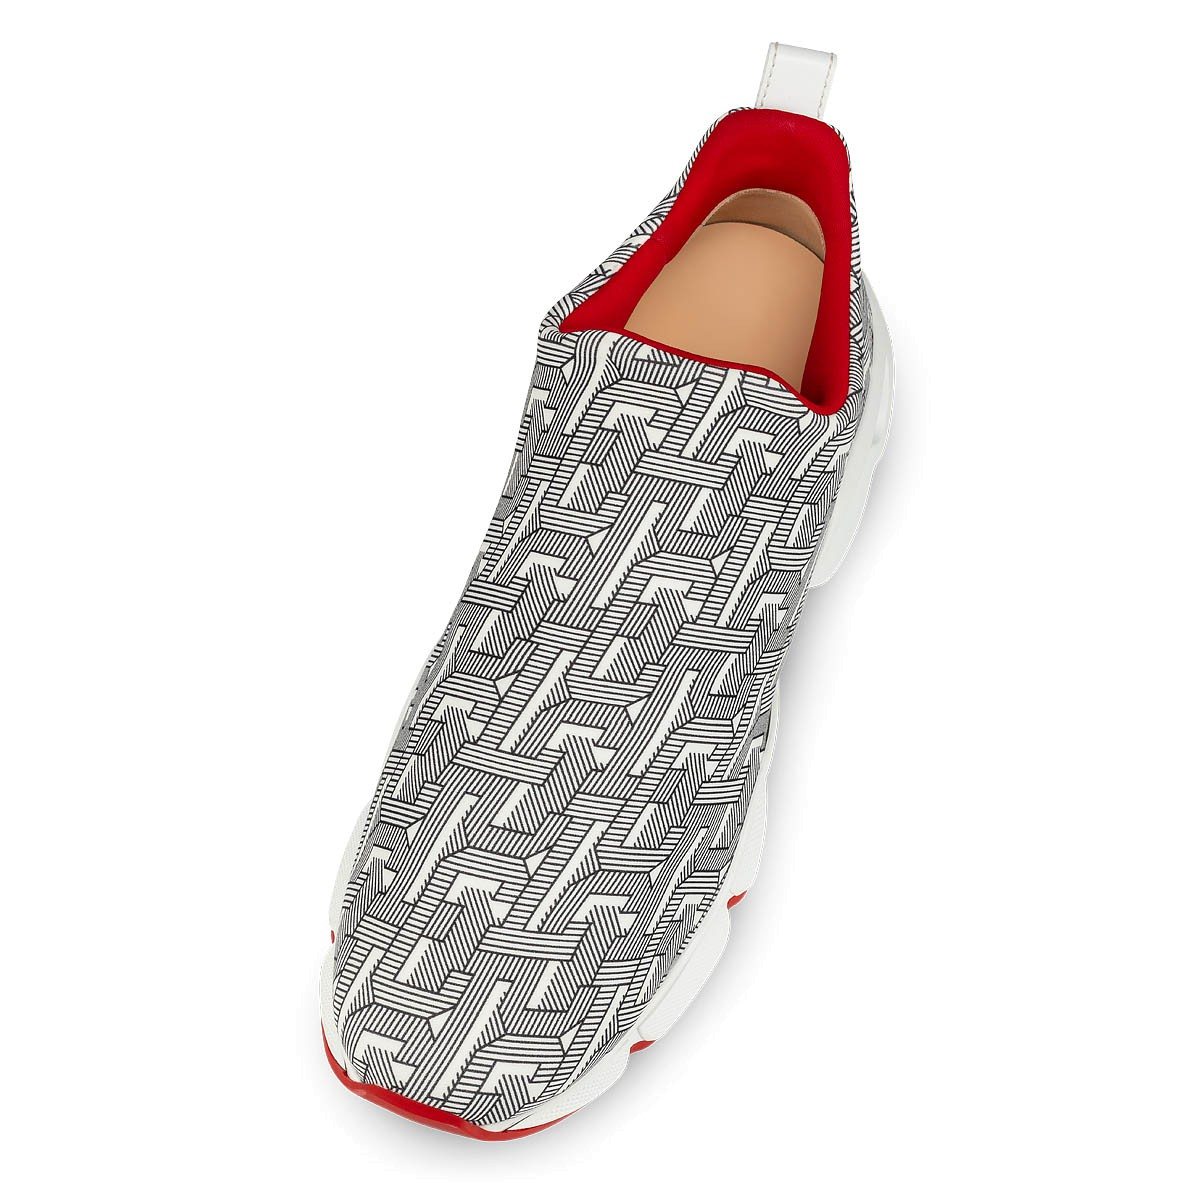 Shoes - Space Run Flat - Christian Louboutin